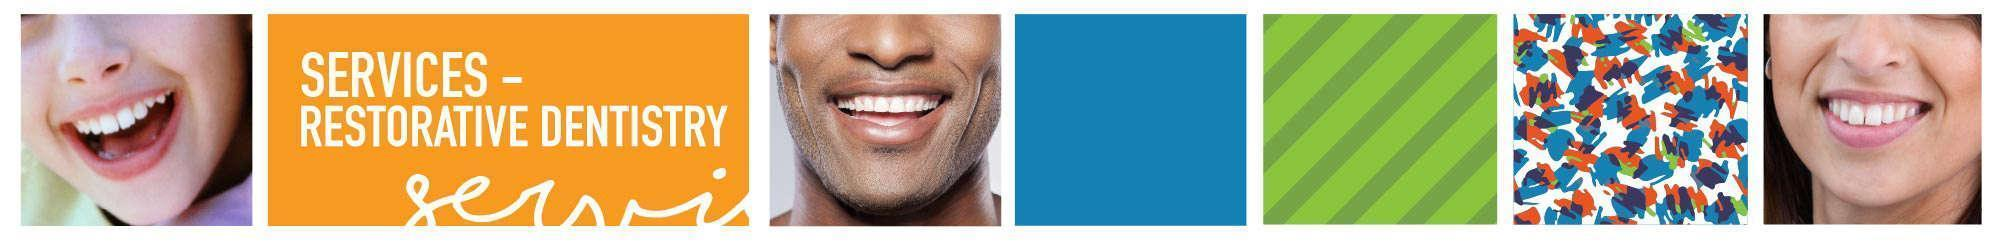 Wichita Restorative Dentistry